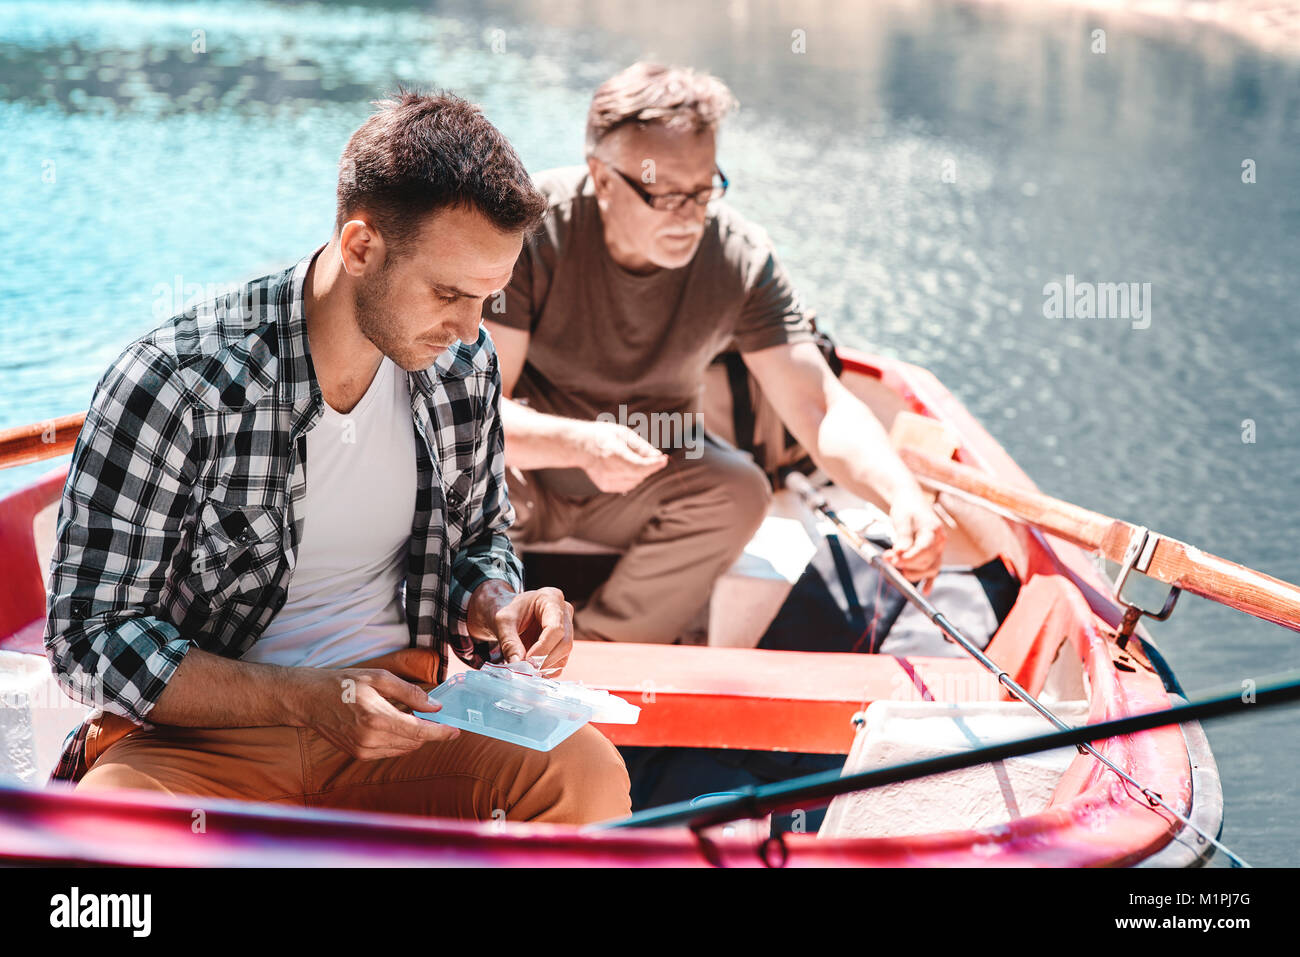 Fishing is a good way to de stress - Stock Image